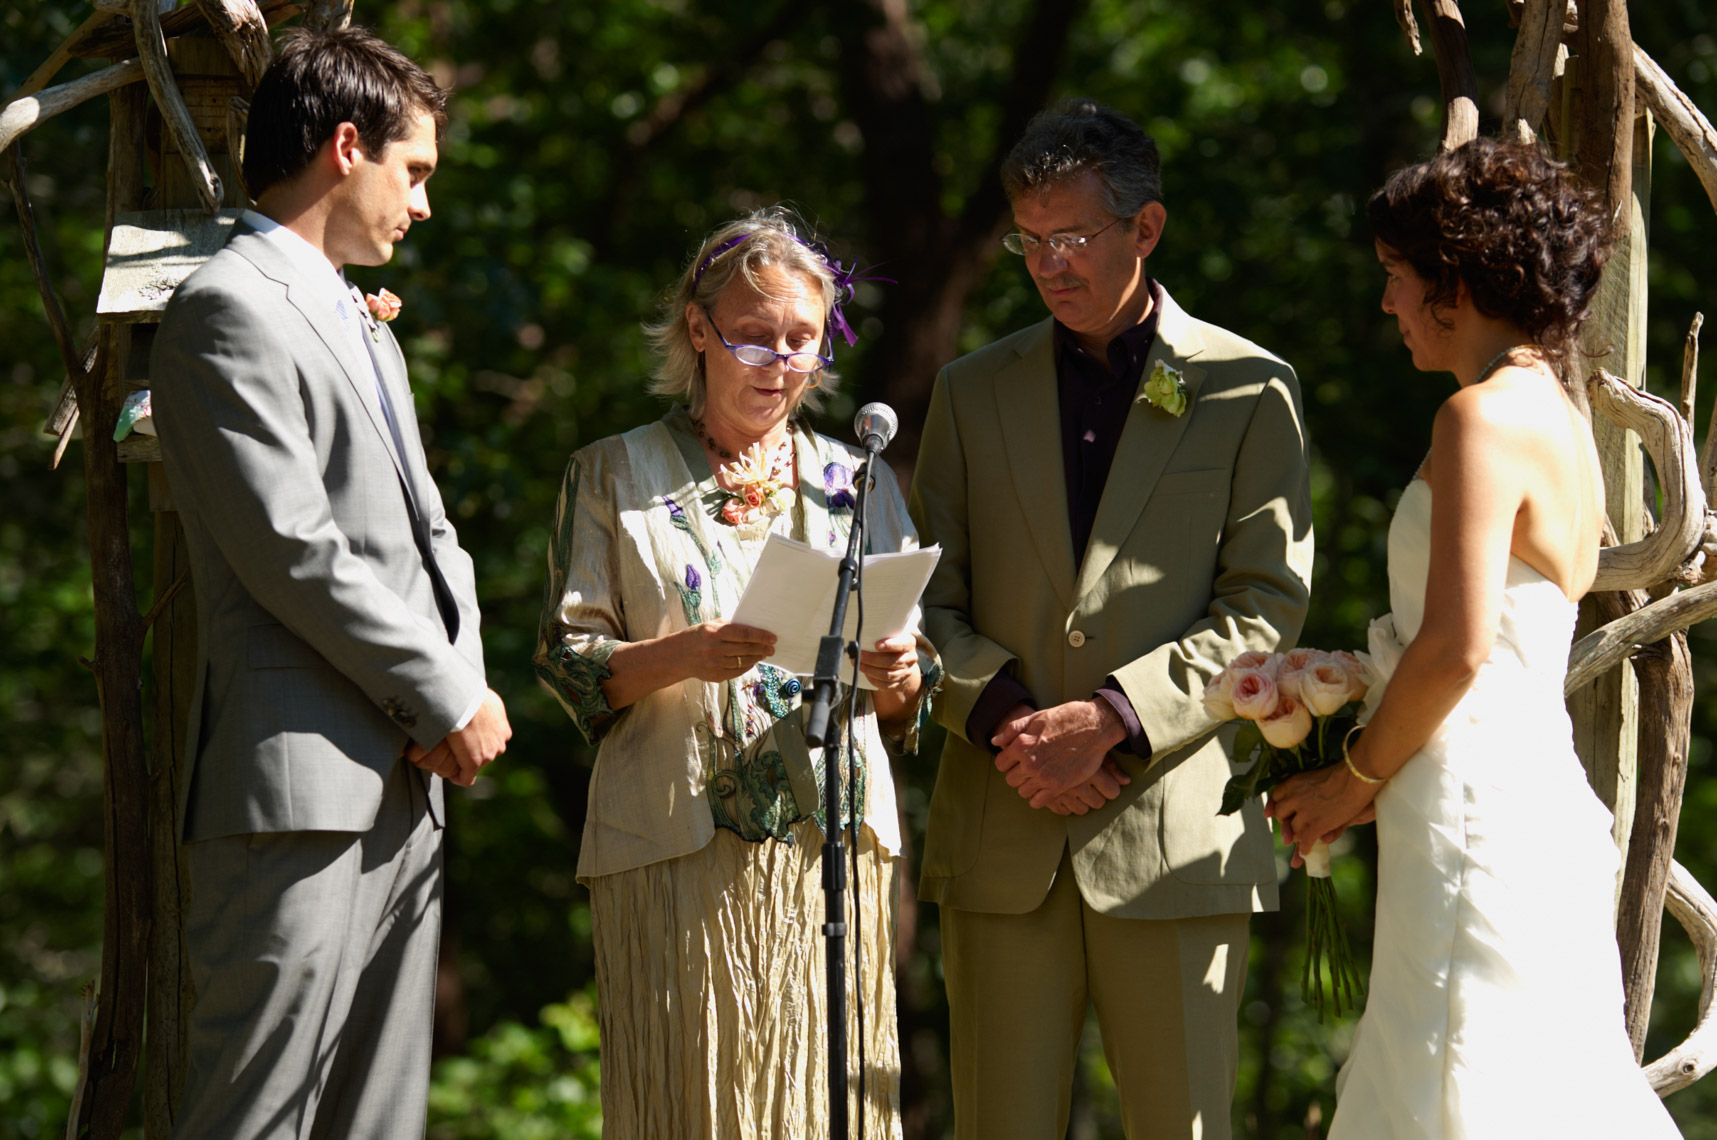 Thomas_Kletecka_Photography_Wedding__0040